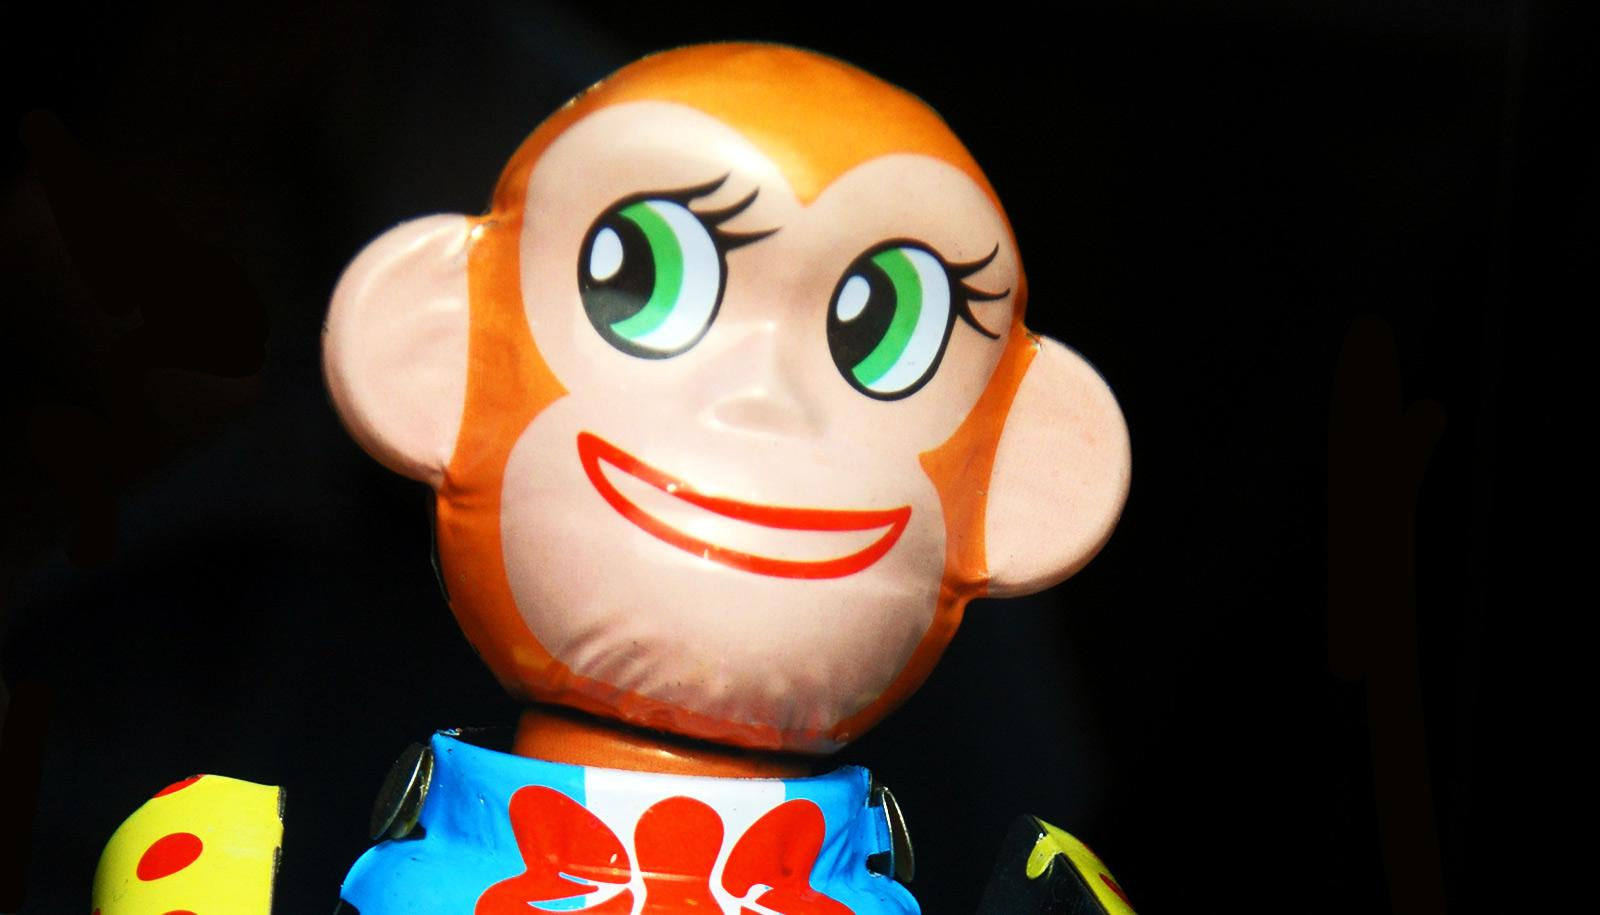 toy monkey looks like it's scheming